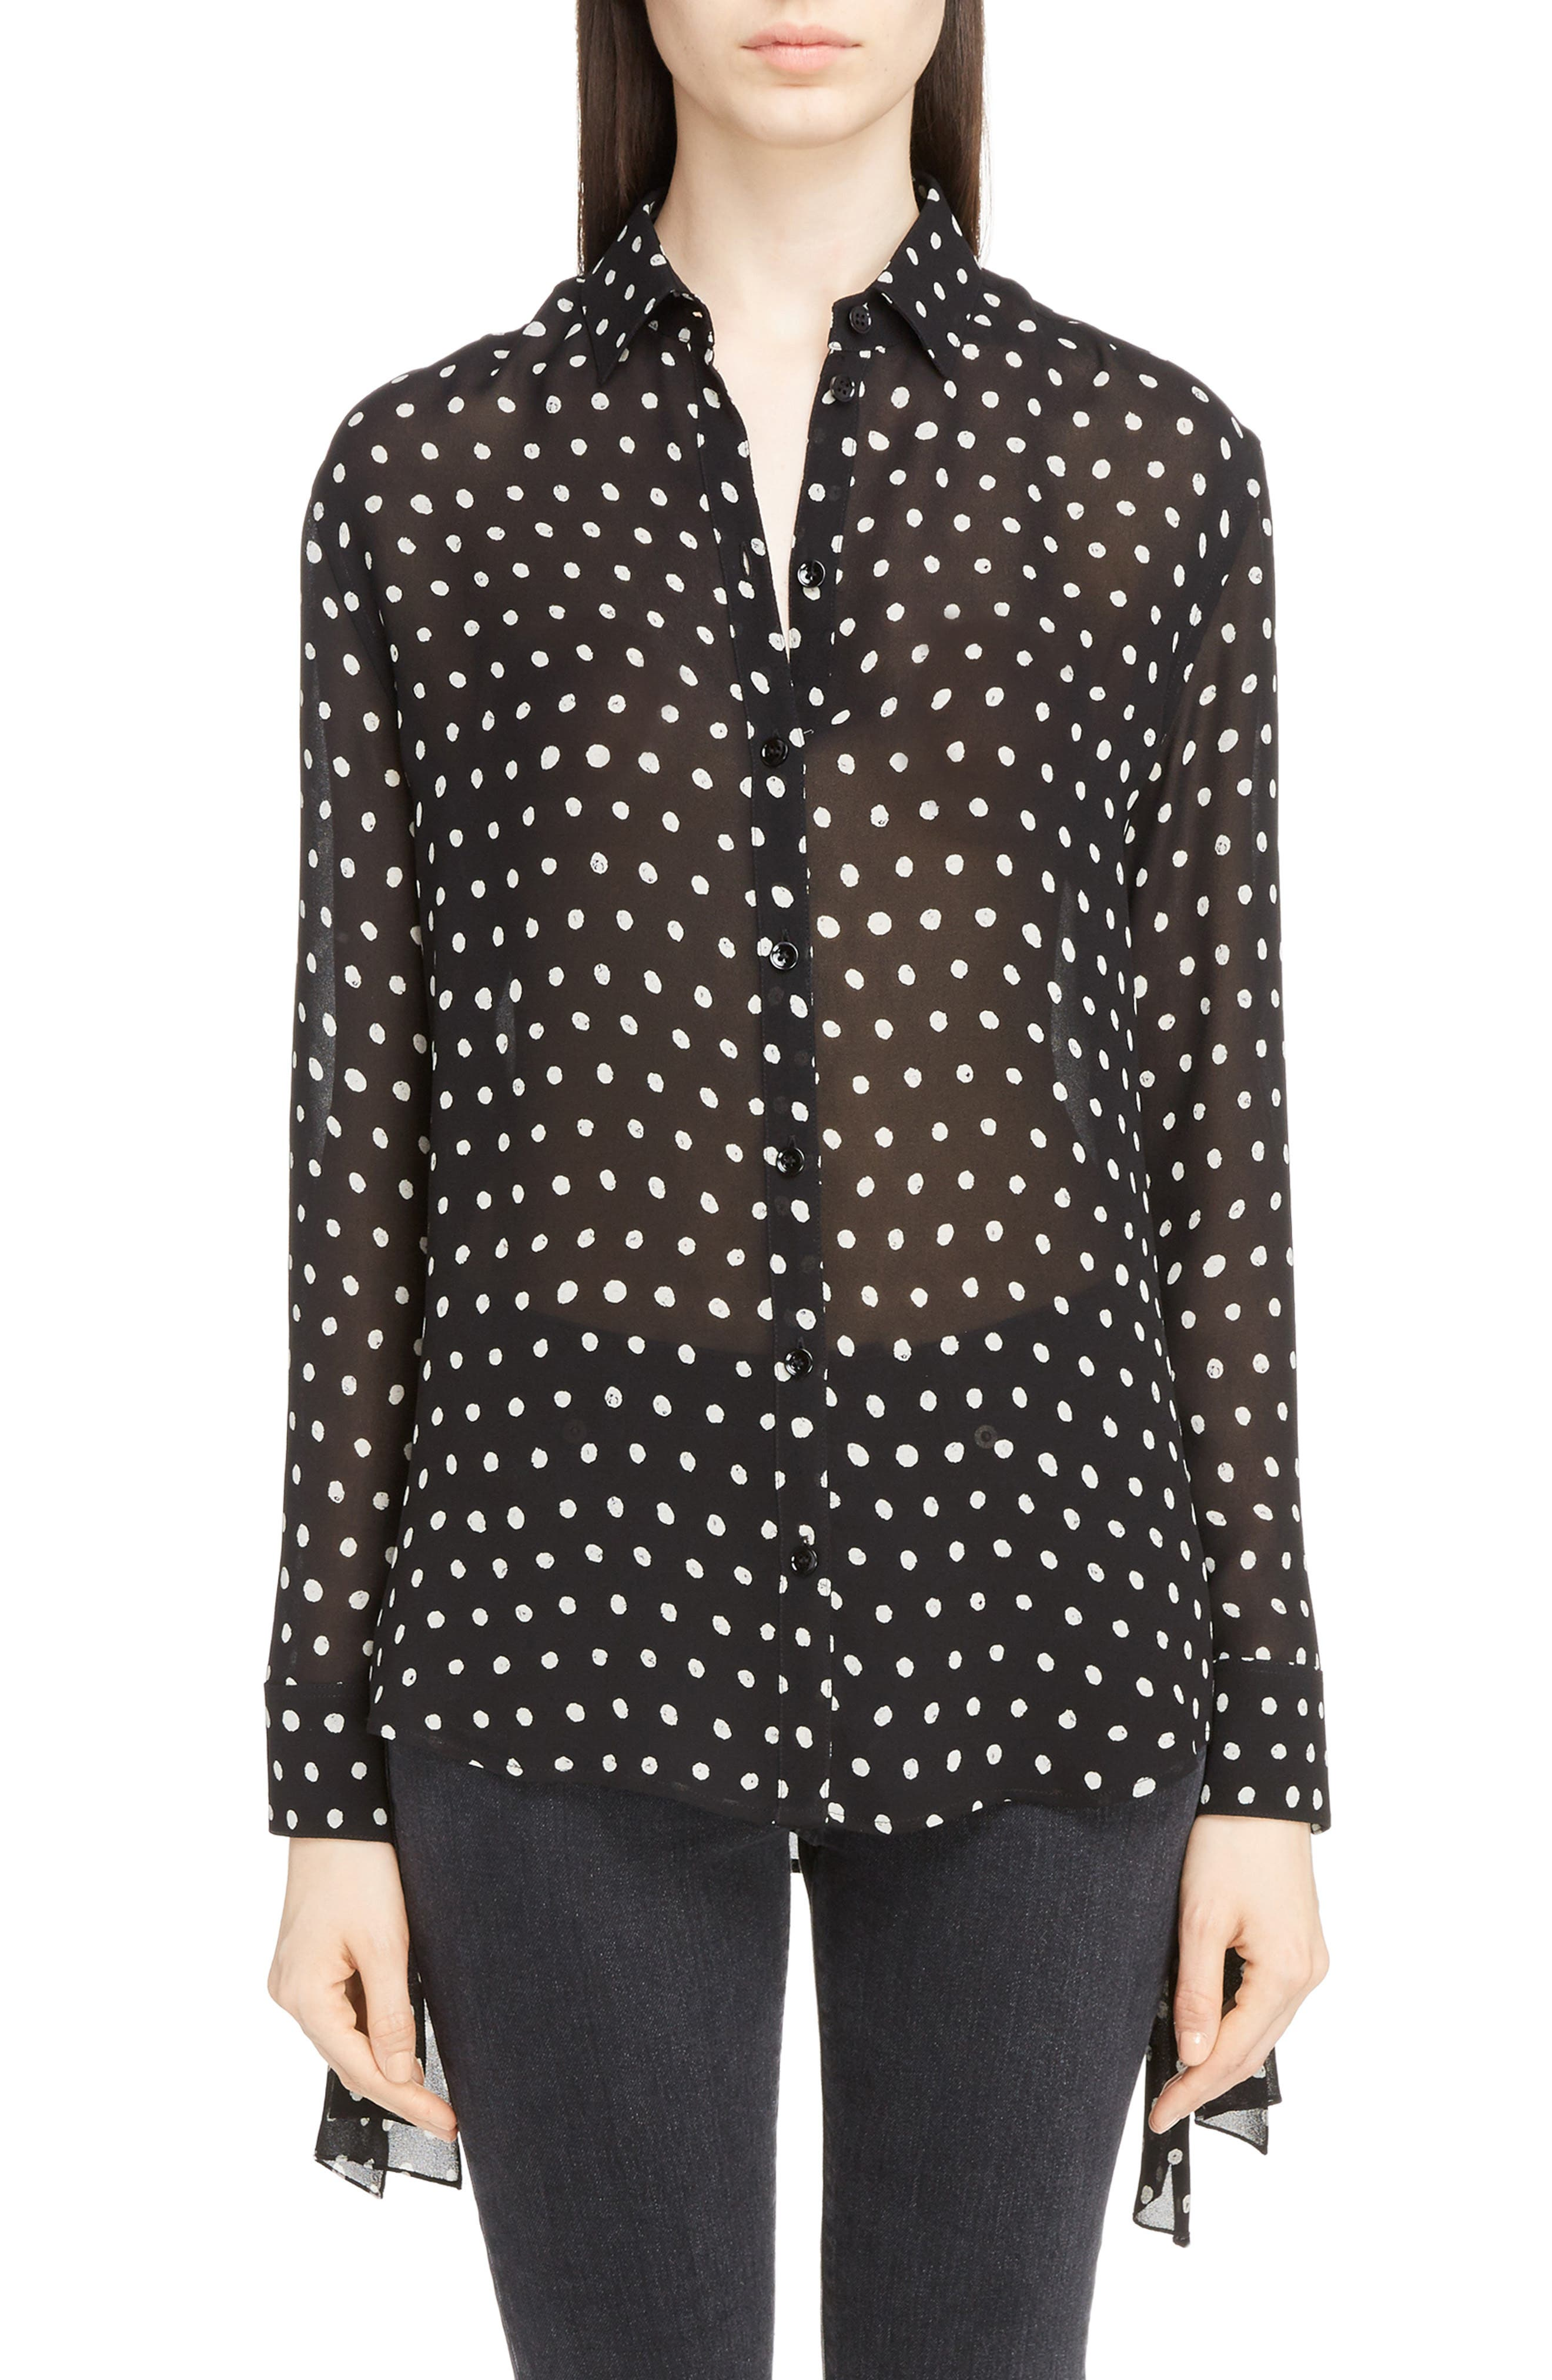 Saint Laurent Tie Cuff Polka Dot Blouse